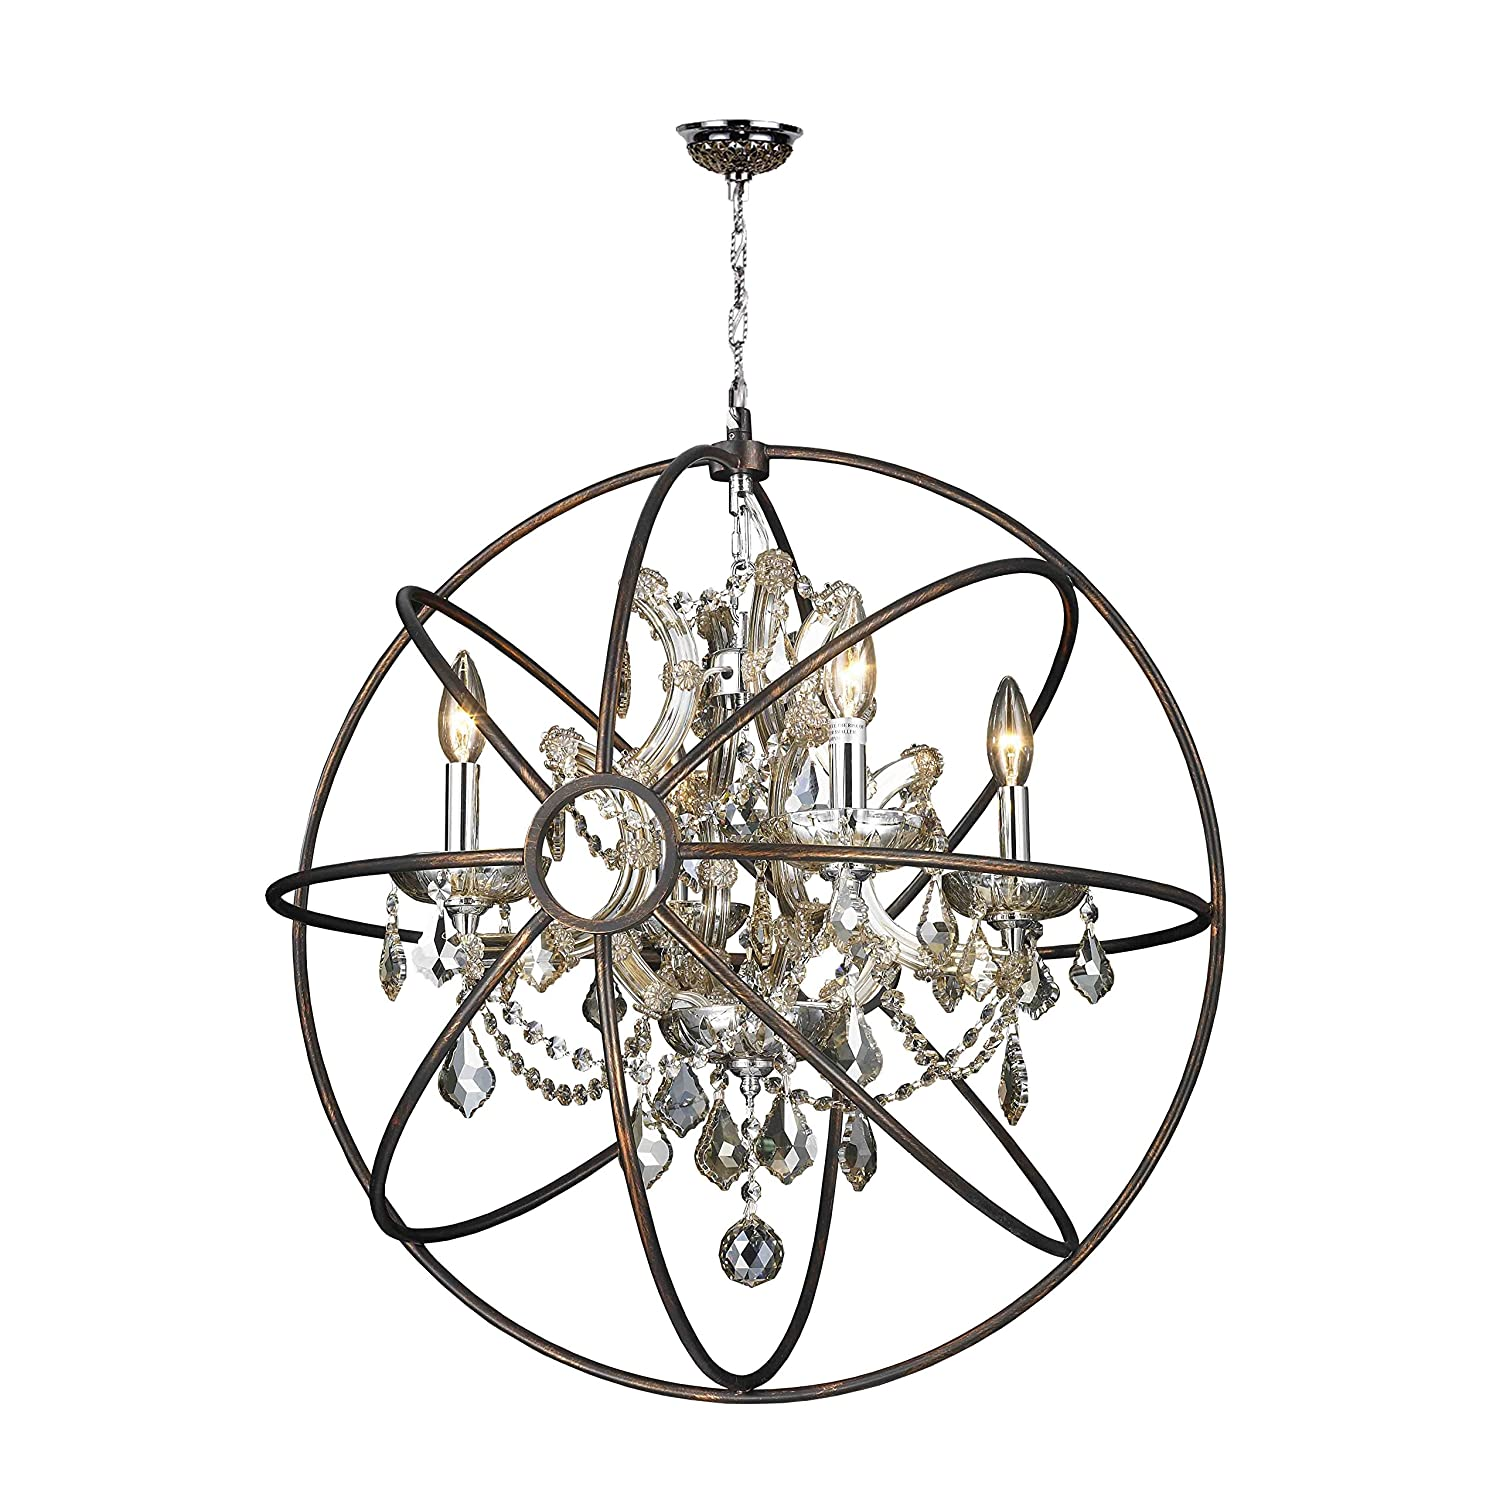 Worldwide lighting armillary collection 4 light chrome finish and worldwide lighting armillary collection 4 light chrome finish and golden teak crystal with flemish brass cage finish foucaults orb chandelier 24 d large arubaitofo Image collections